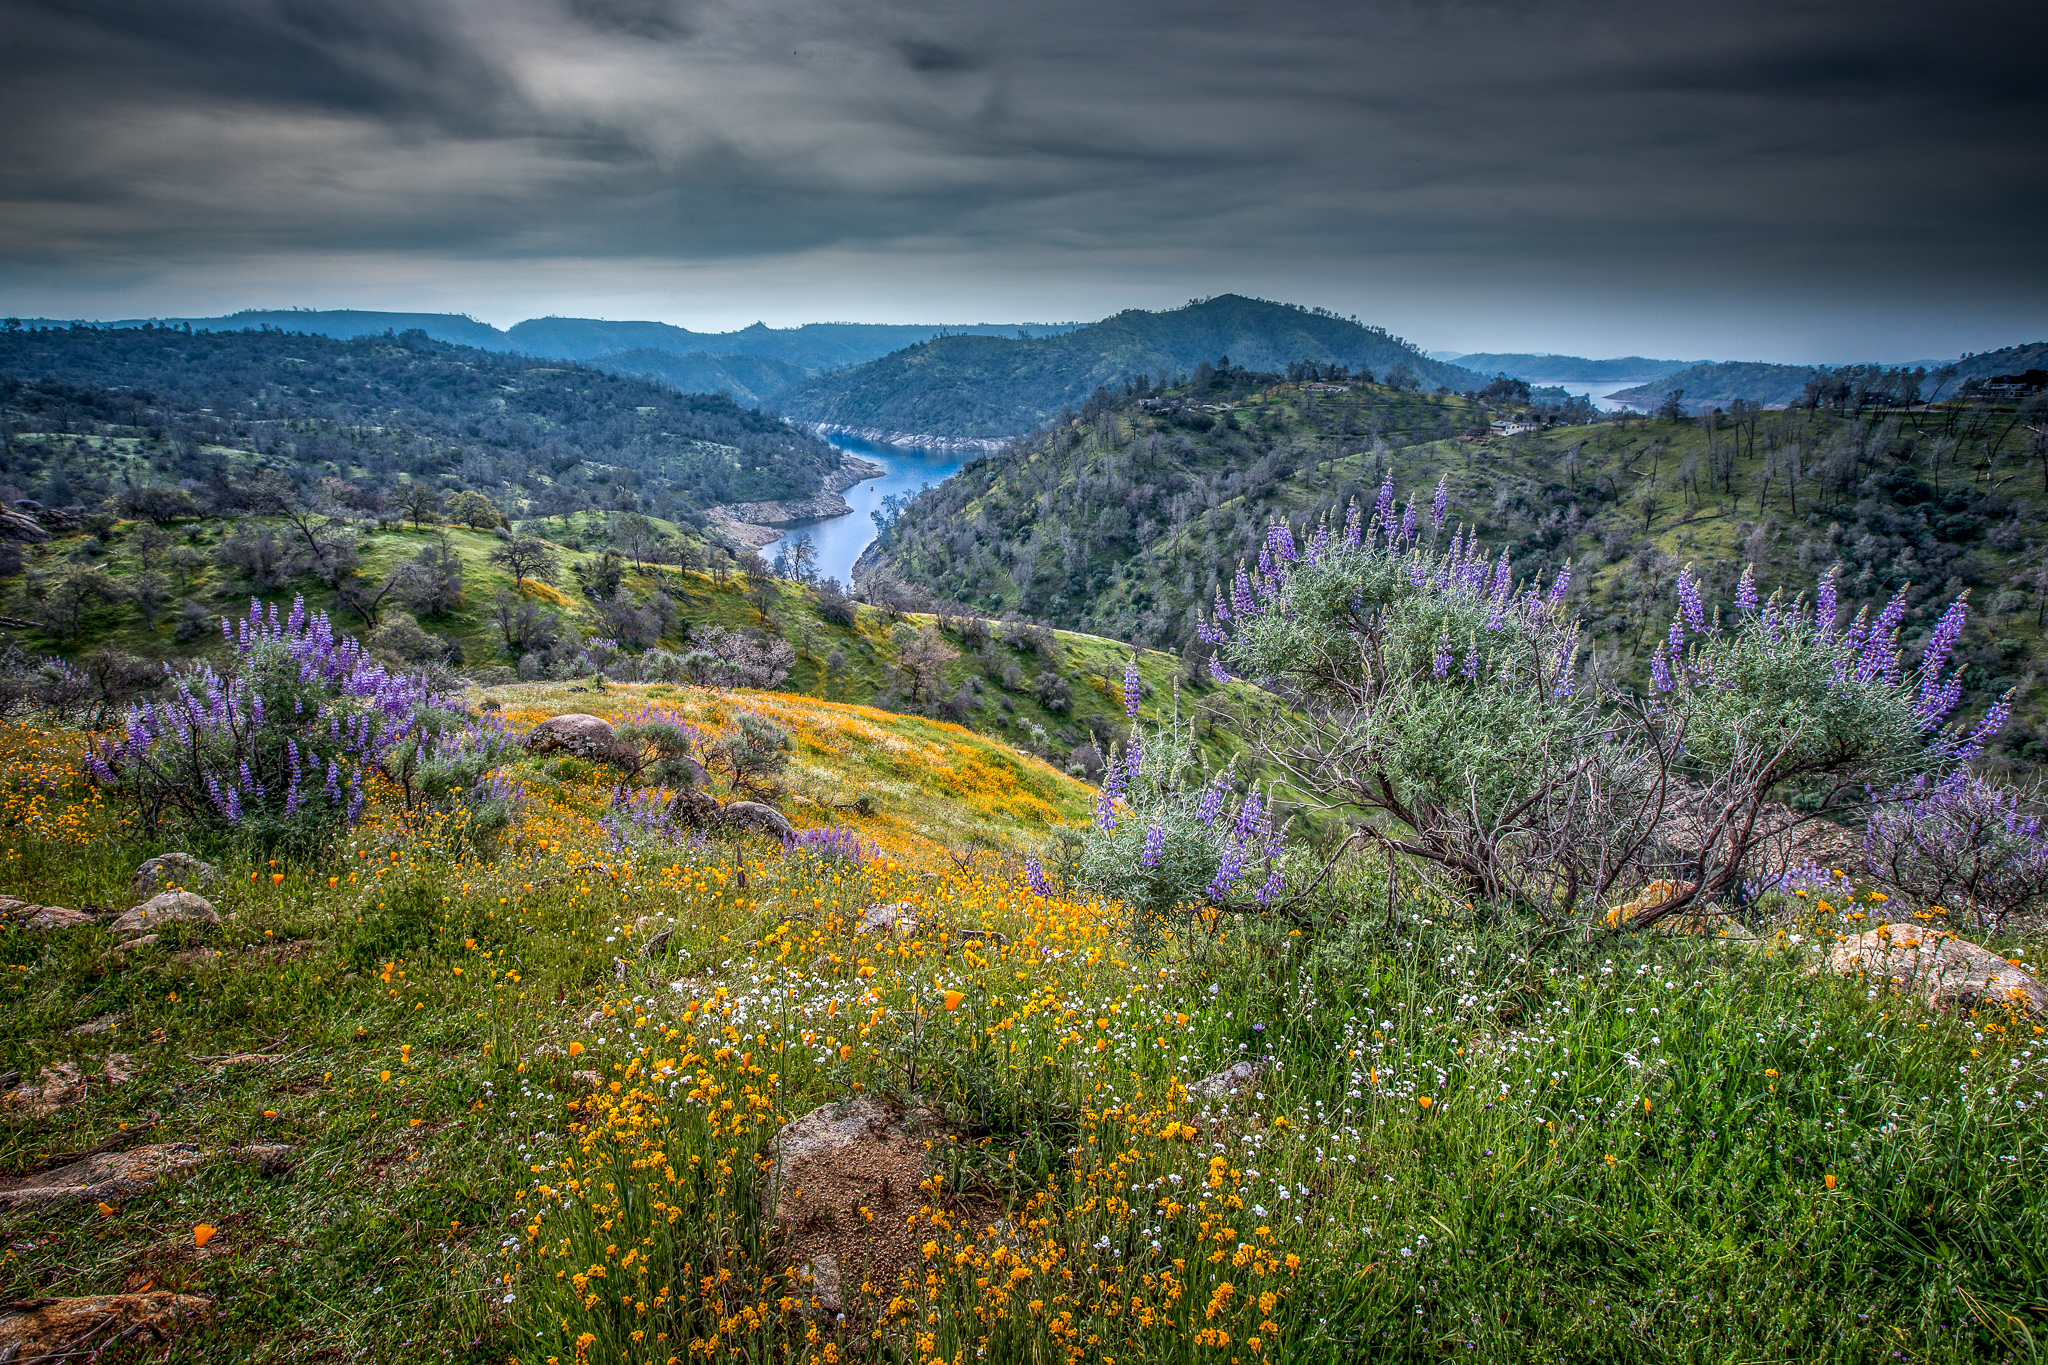 Spring Bloom in Sierra Nevada Foothills